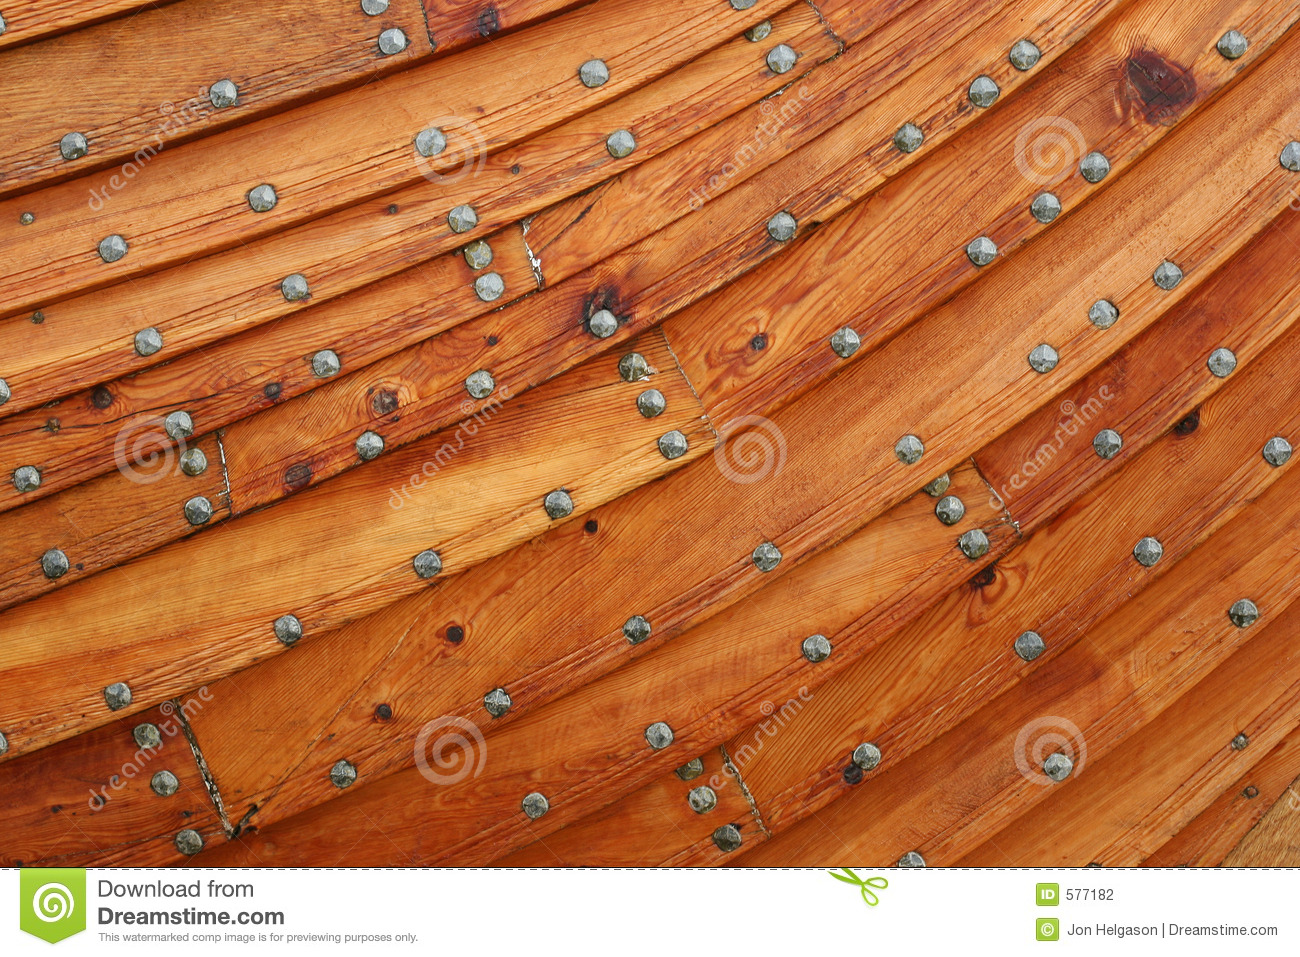 Wooden boat background stock photo. Image of norse, history - 577182